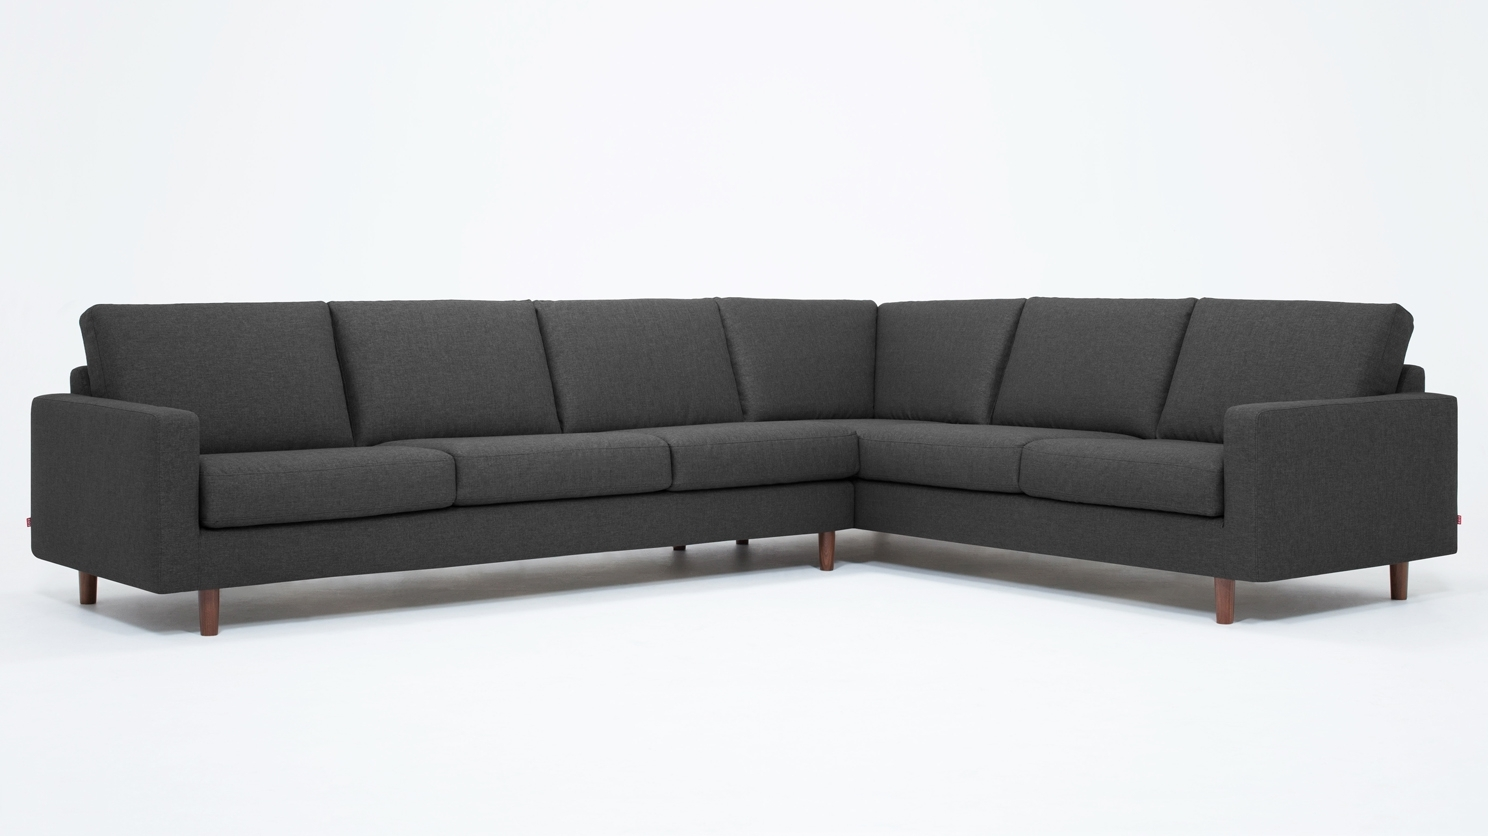 Oskar 2 Piece Sectional Sofa – Fabric Throughout Most Current Eq3 Sectional Sofas (View 11 of 20)